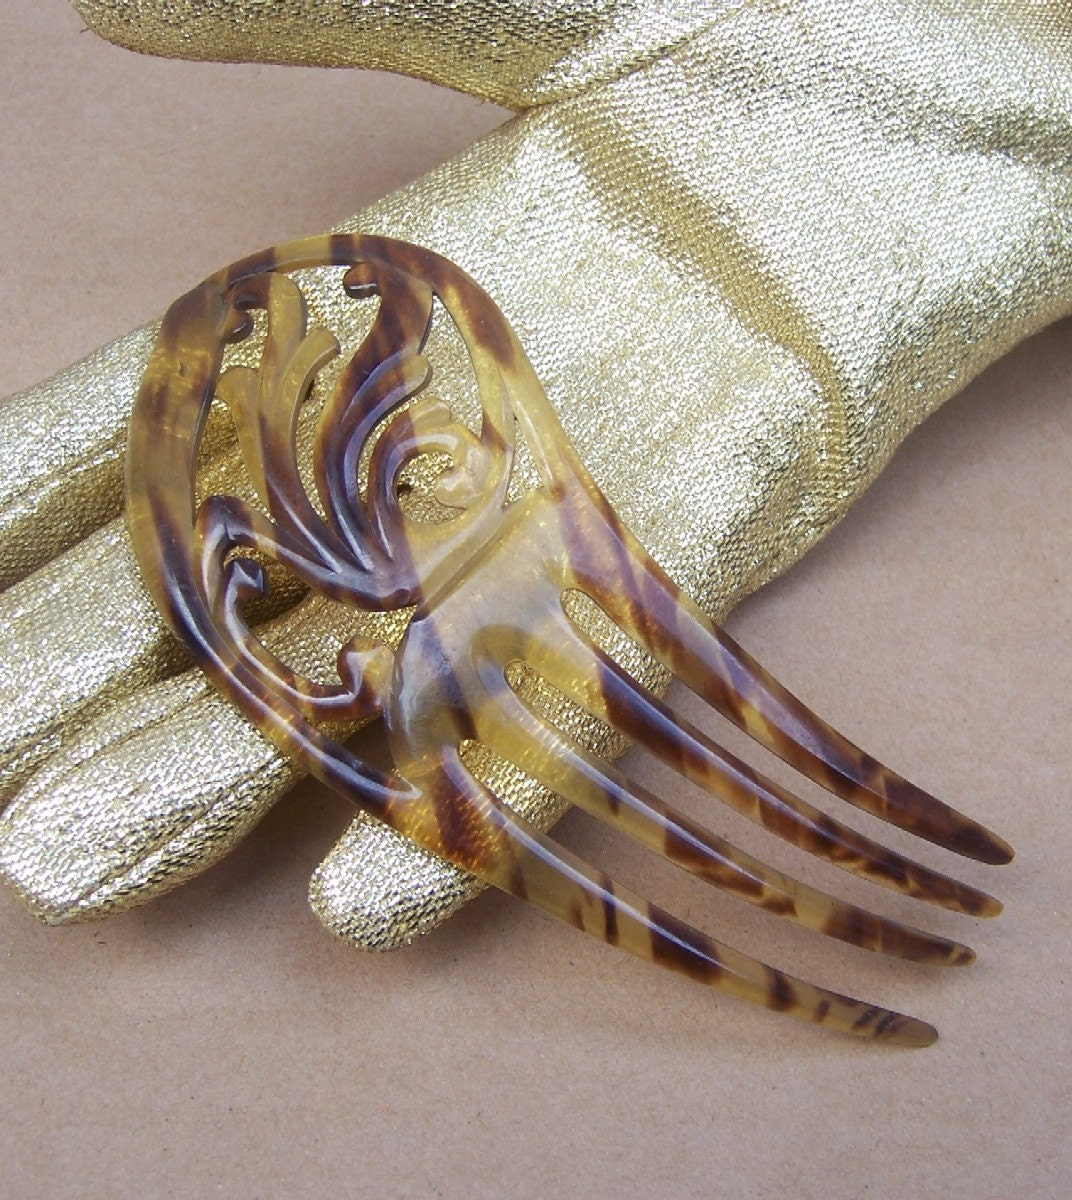 Decorative hair comb victorian faux tortoiseshell spanish comb - Decorative hair slides ...